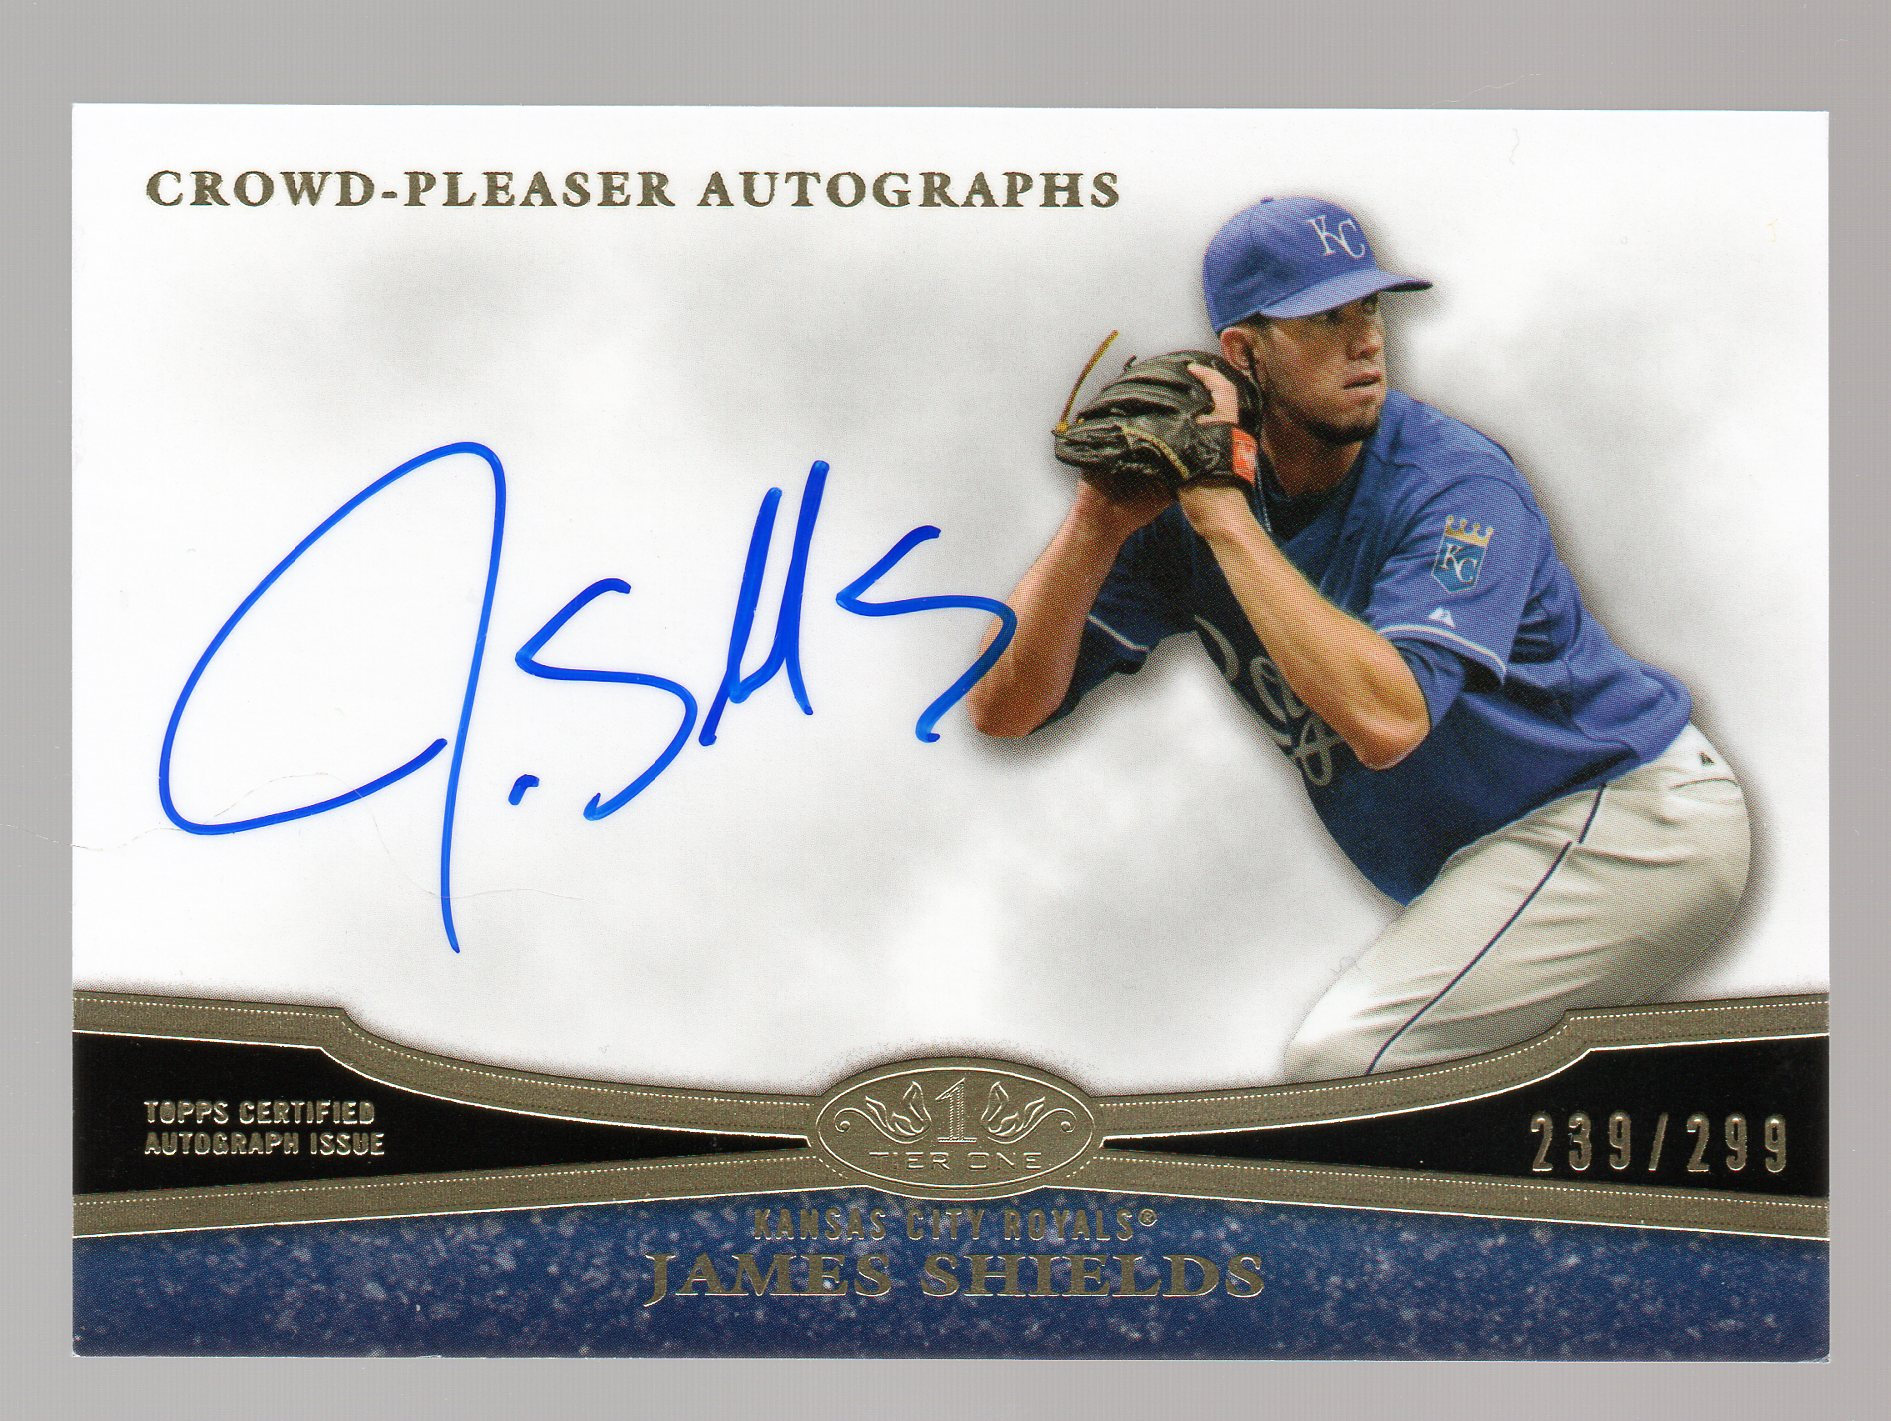 2013 Topps Tier One Crowd Pleaser Autographs #JS1 James Shields/299